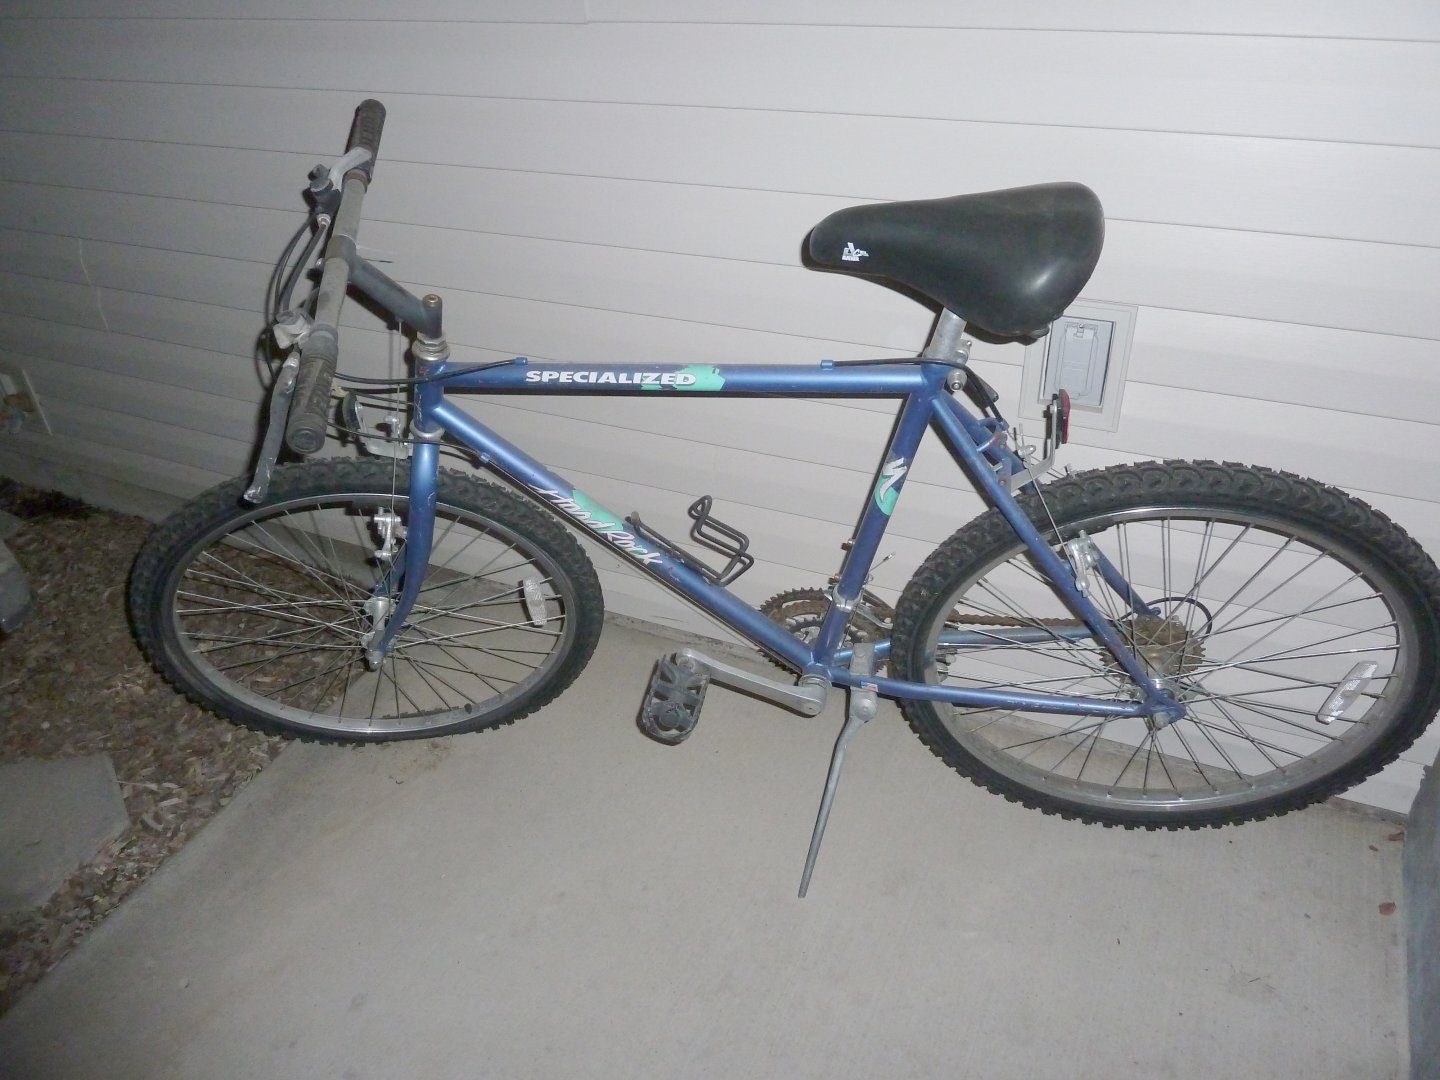 Diy Electric Bike Diy Bike For Conversion Vintage 1980s